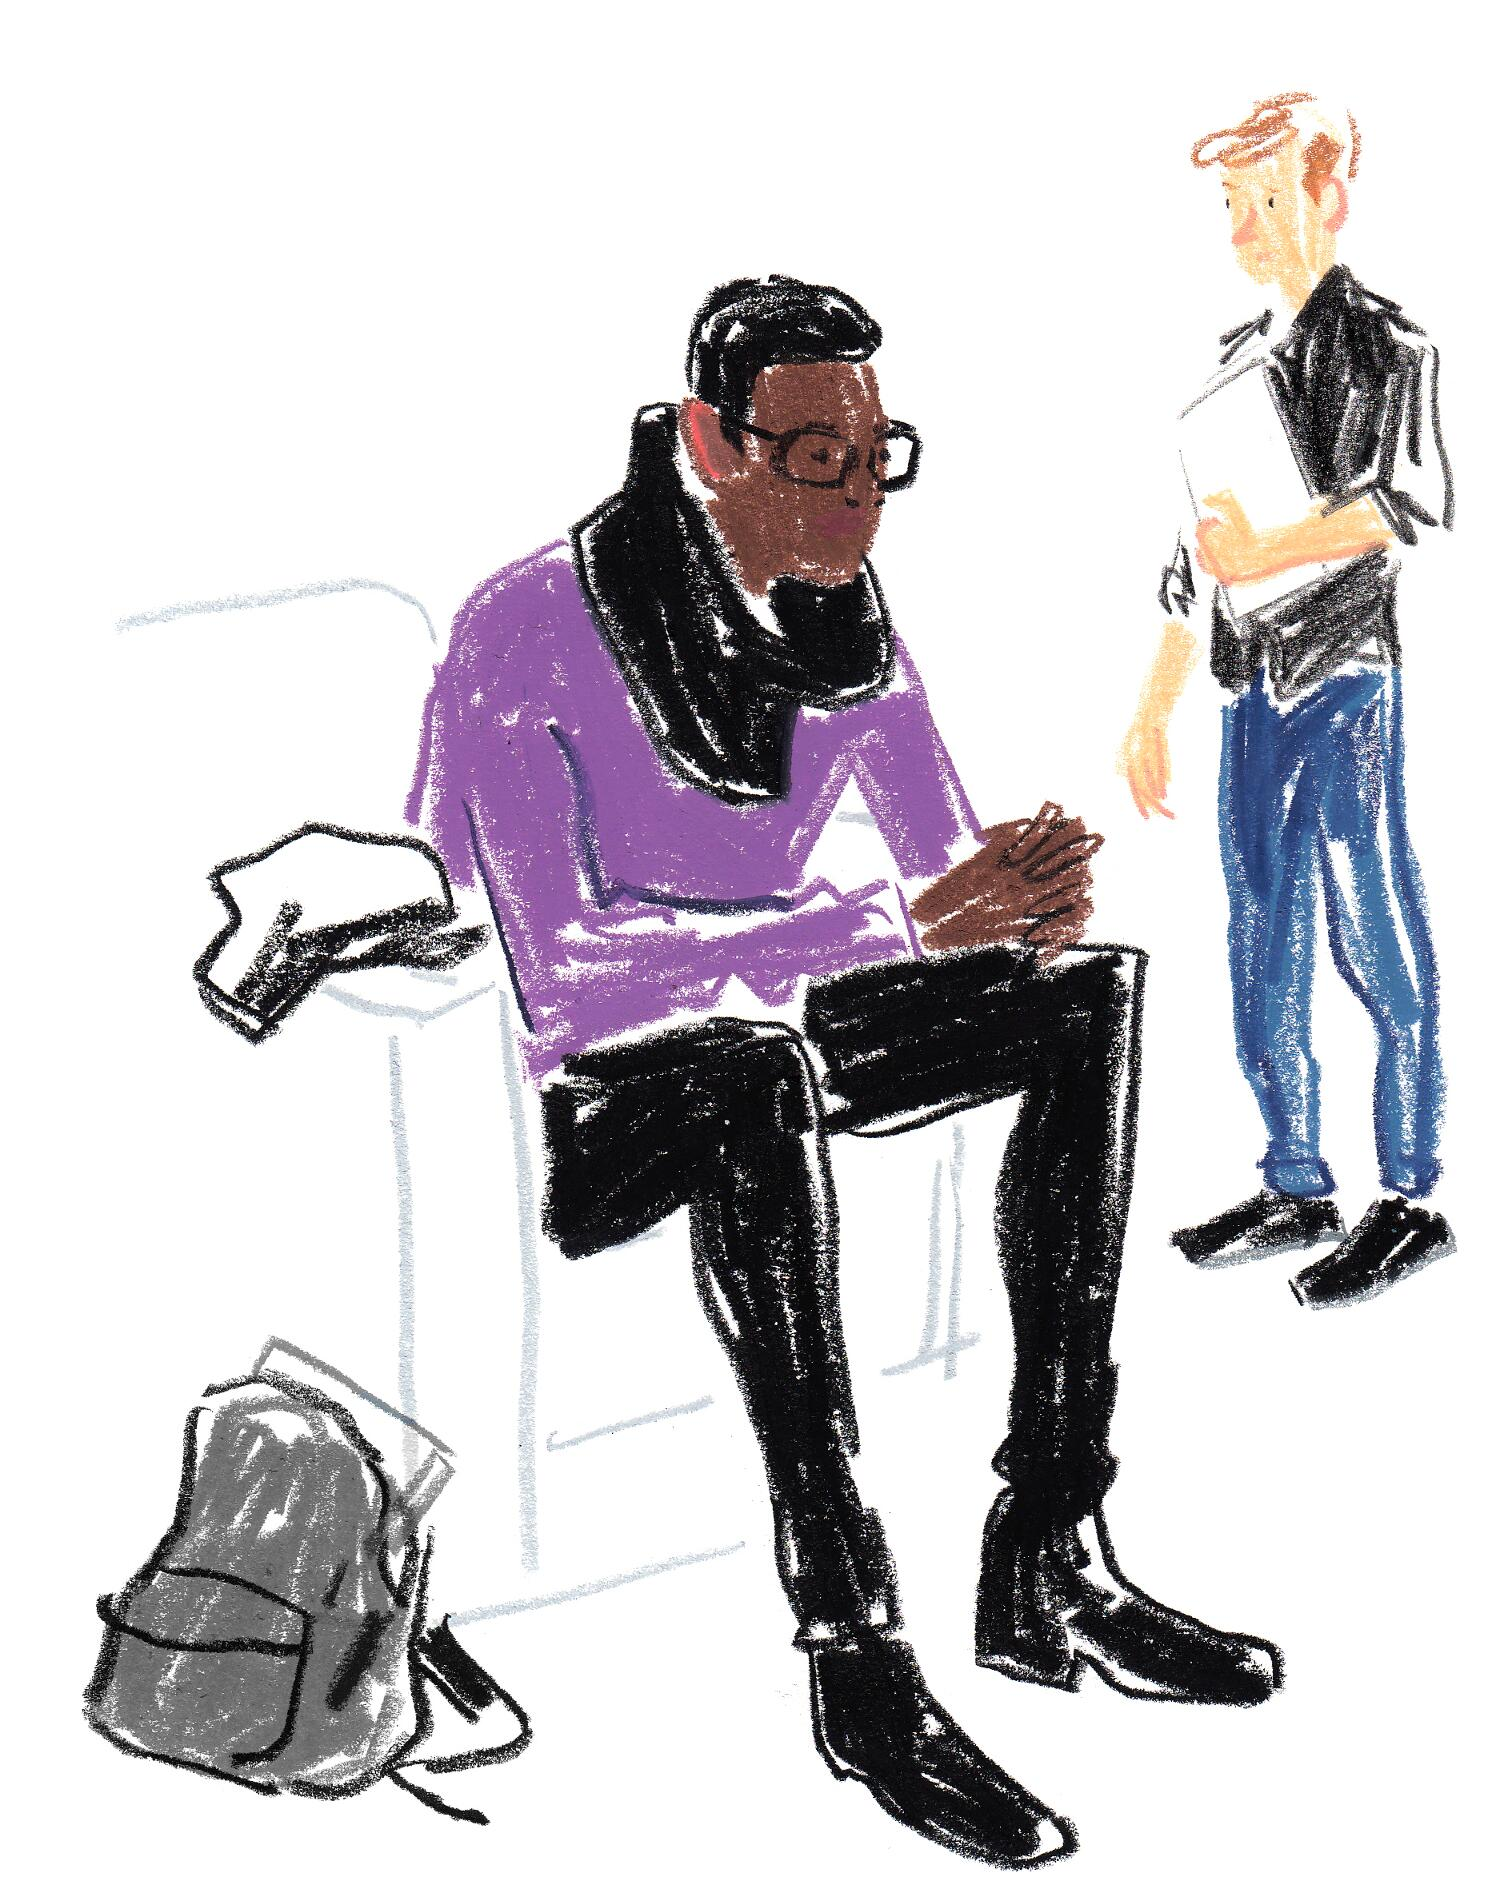 Hermès Fall Winter 2015-16 Menswear Illustration Damien Florébert Cuypers